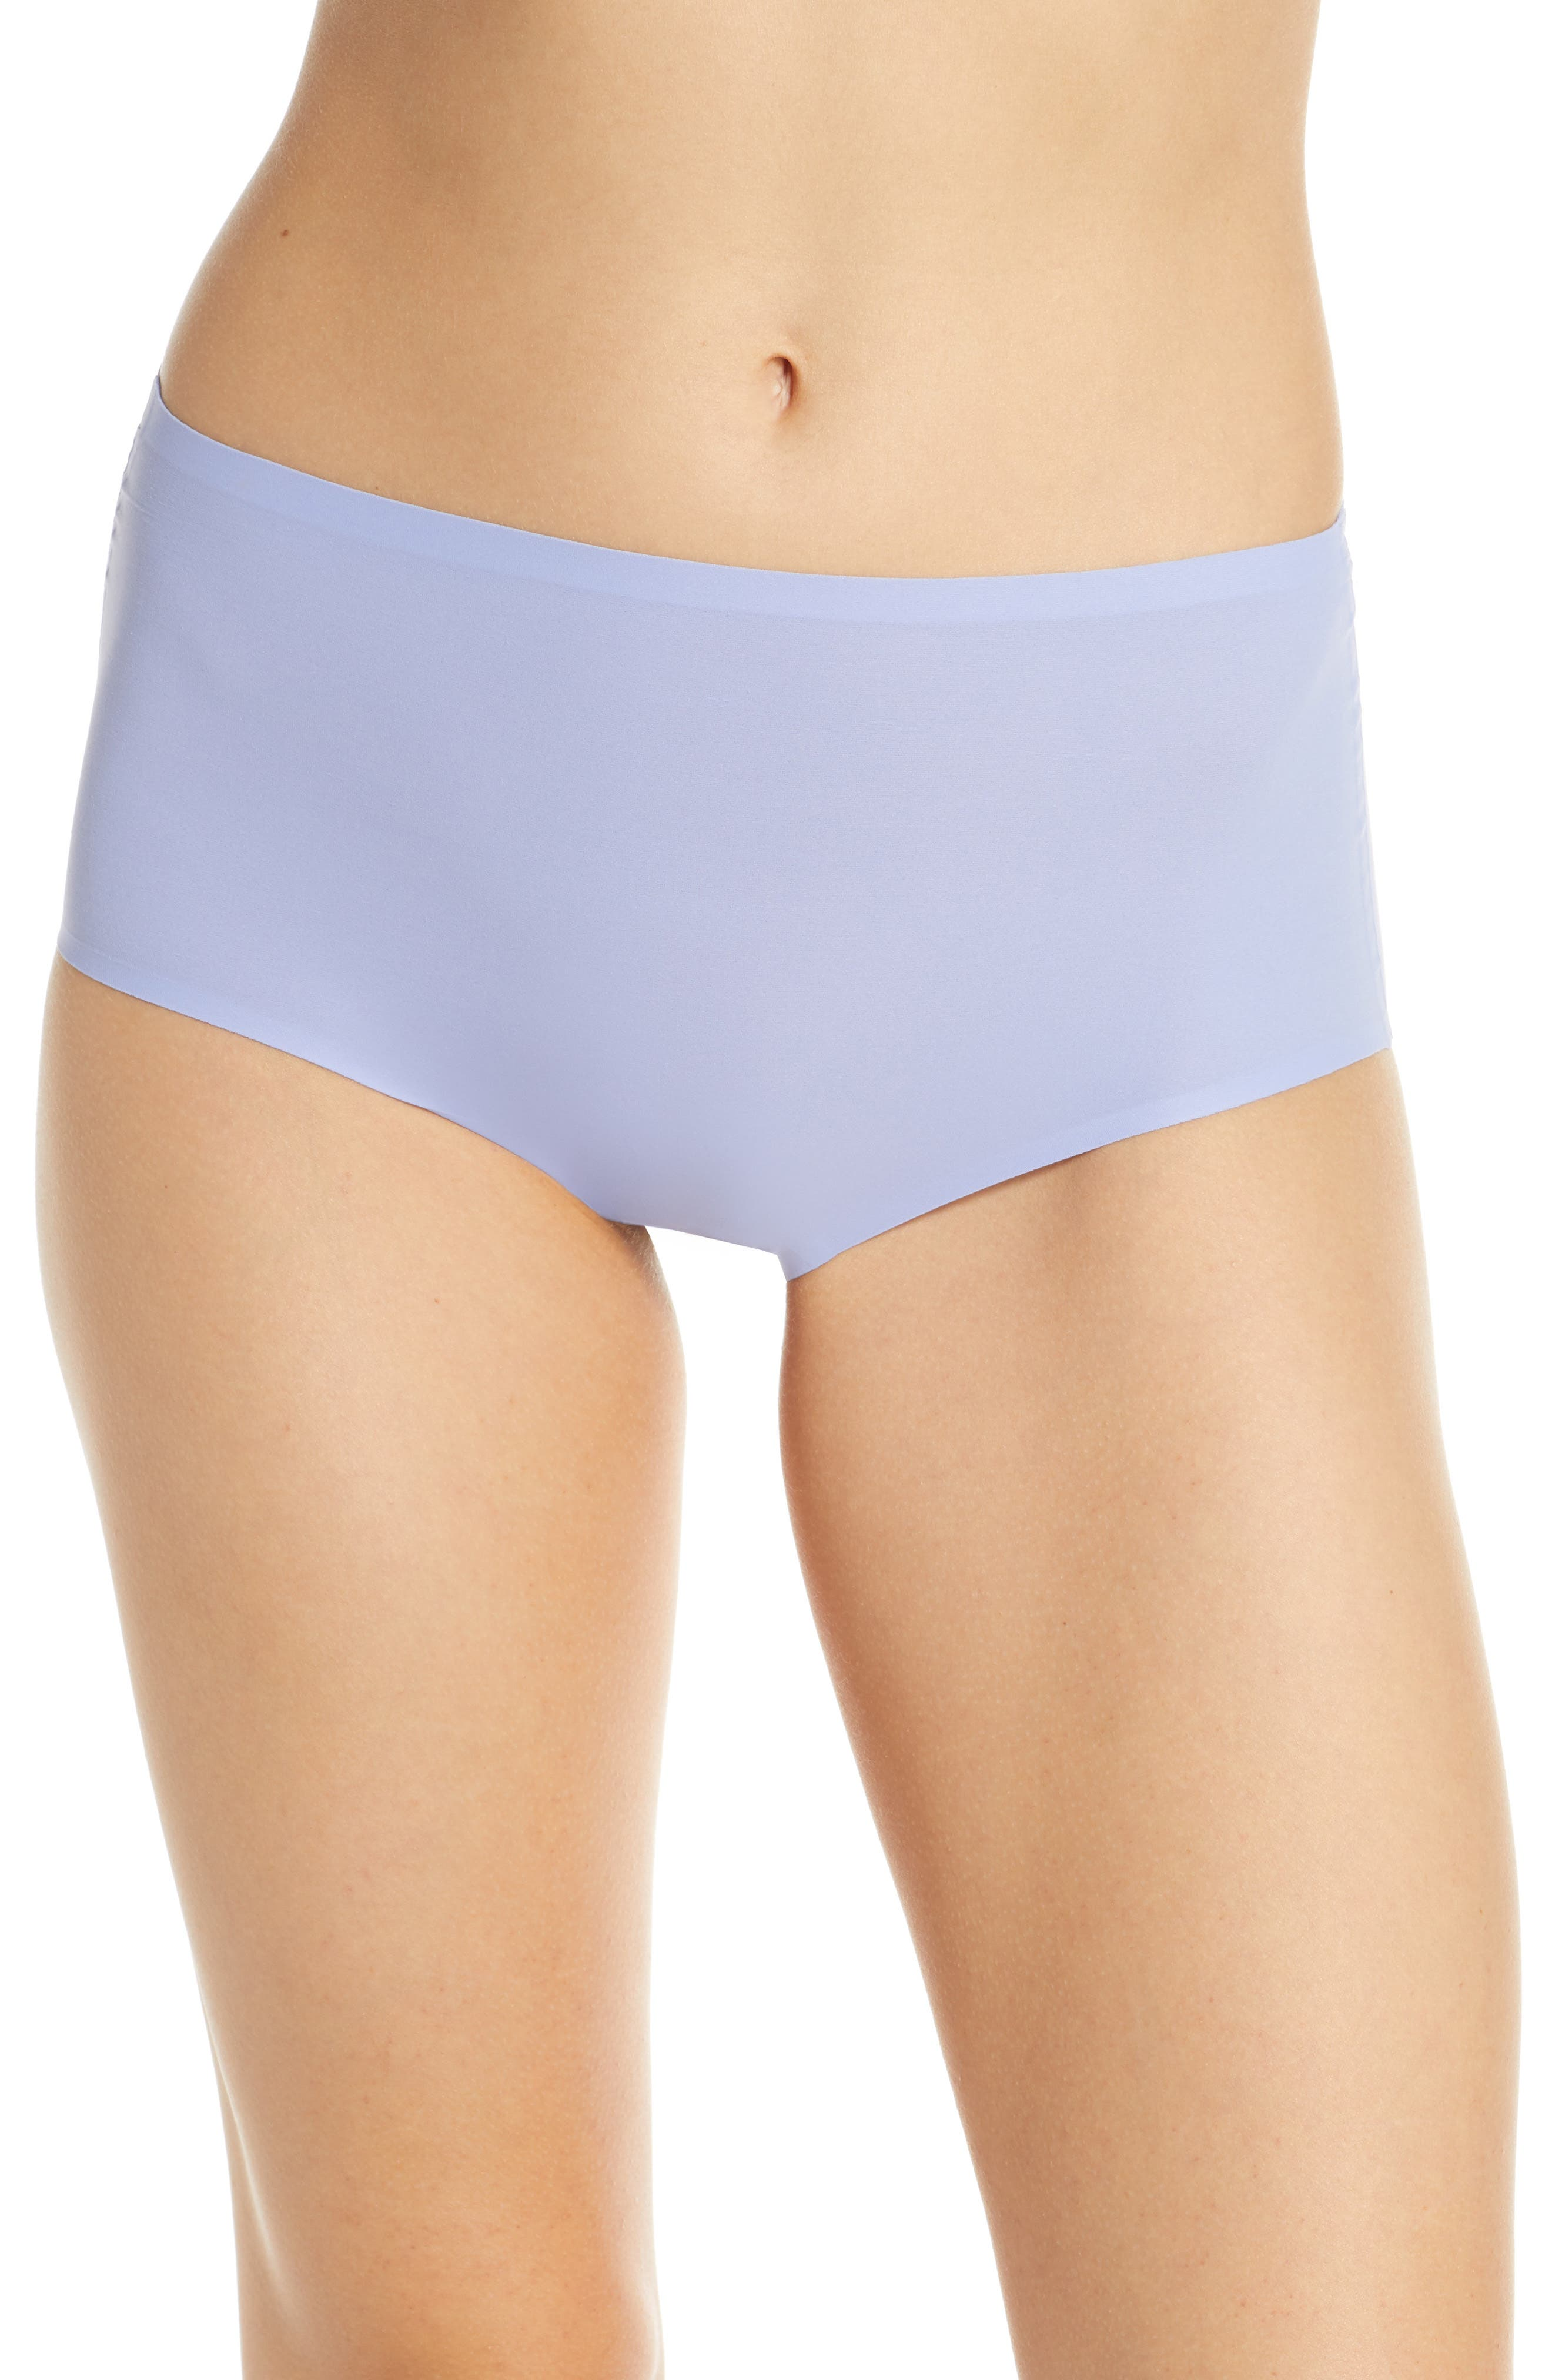 Chantelle Lingerie Soft Stretch High Waist Seamless Briefs (Any 3 for $40)